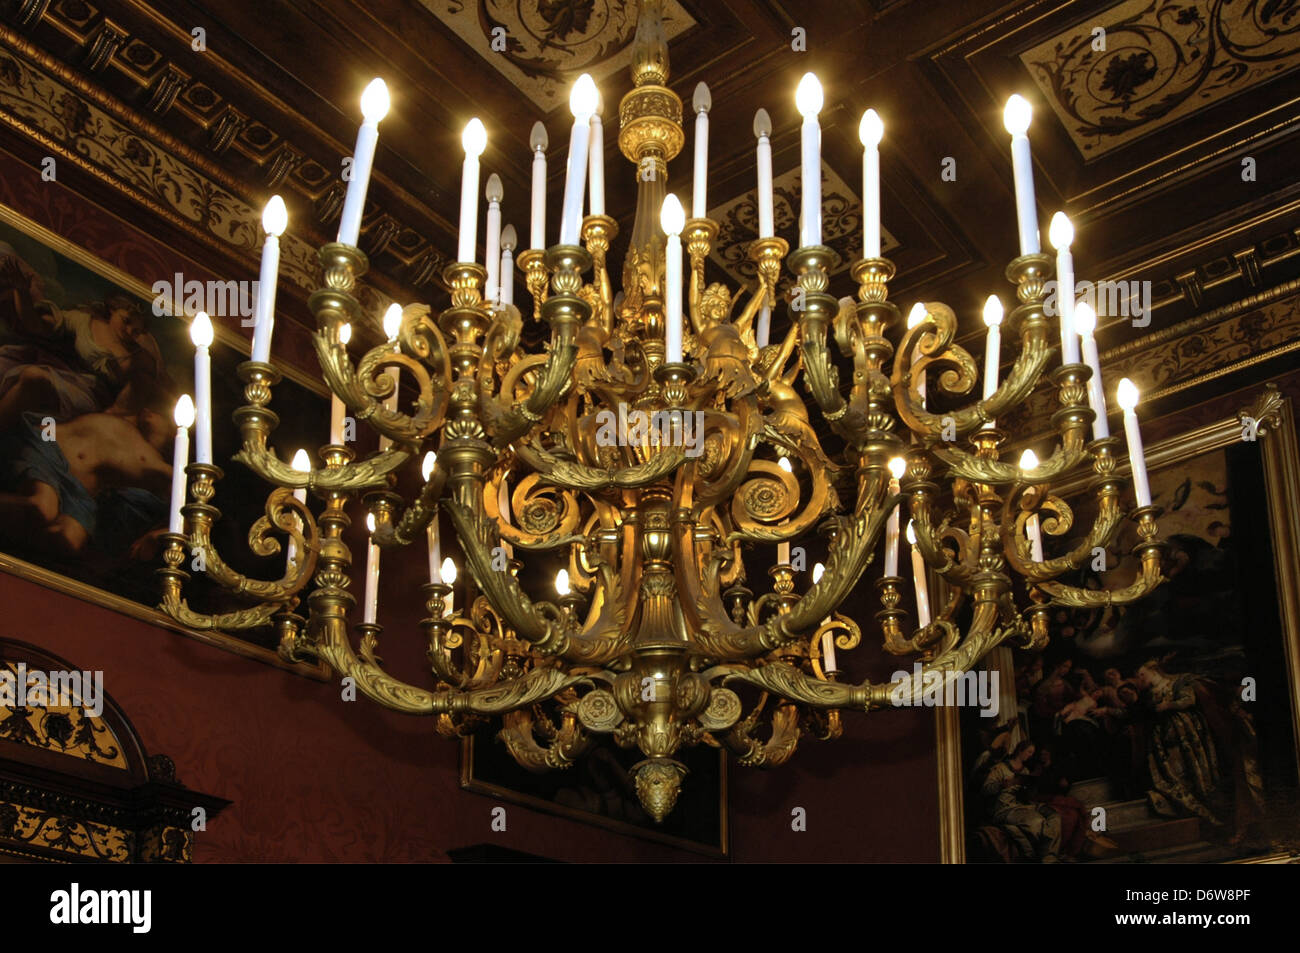 An antique chandelier in Palazzo Parisio sometimes known as Palazzo  Scicluna and officially Palazzo Parisio and Gardens, a palace in Naxxar,  Malta - An Antique Chandelier In Palazzo Parisio Sometimes Known As Palazzo